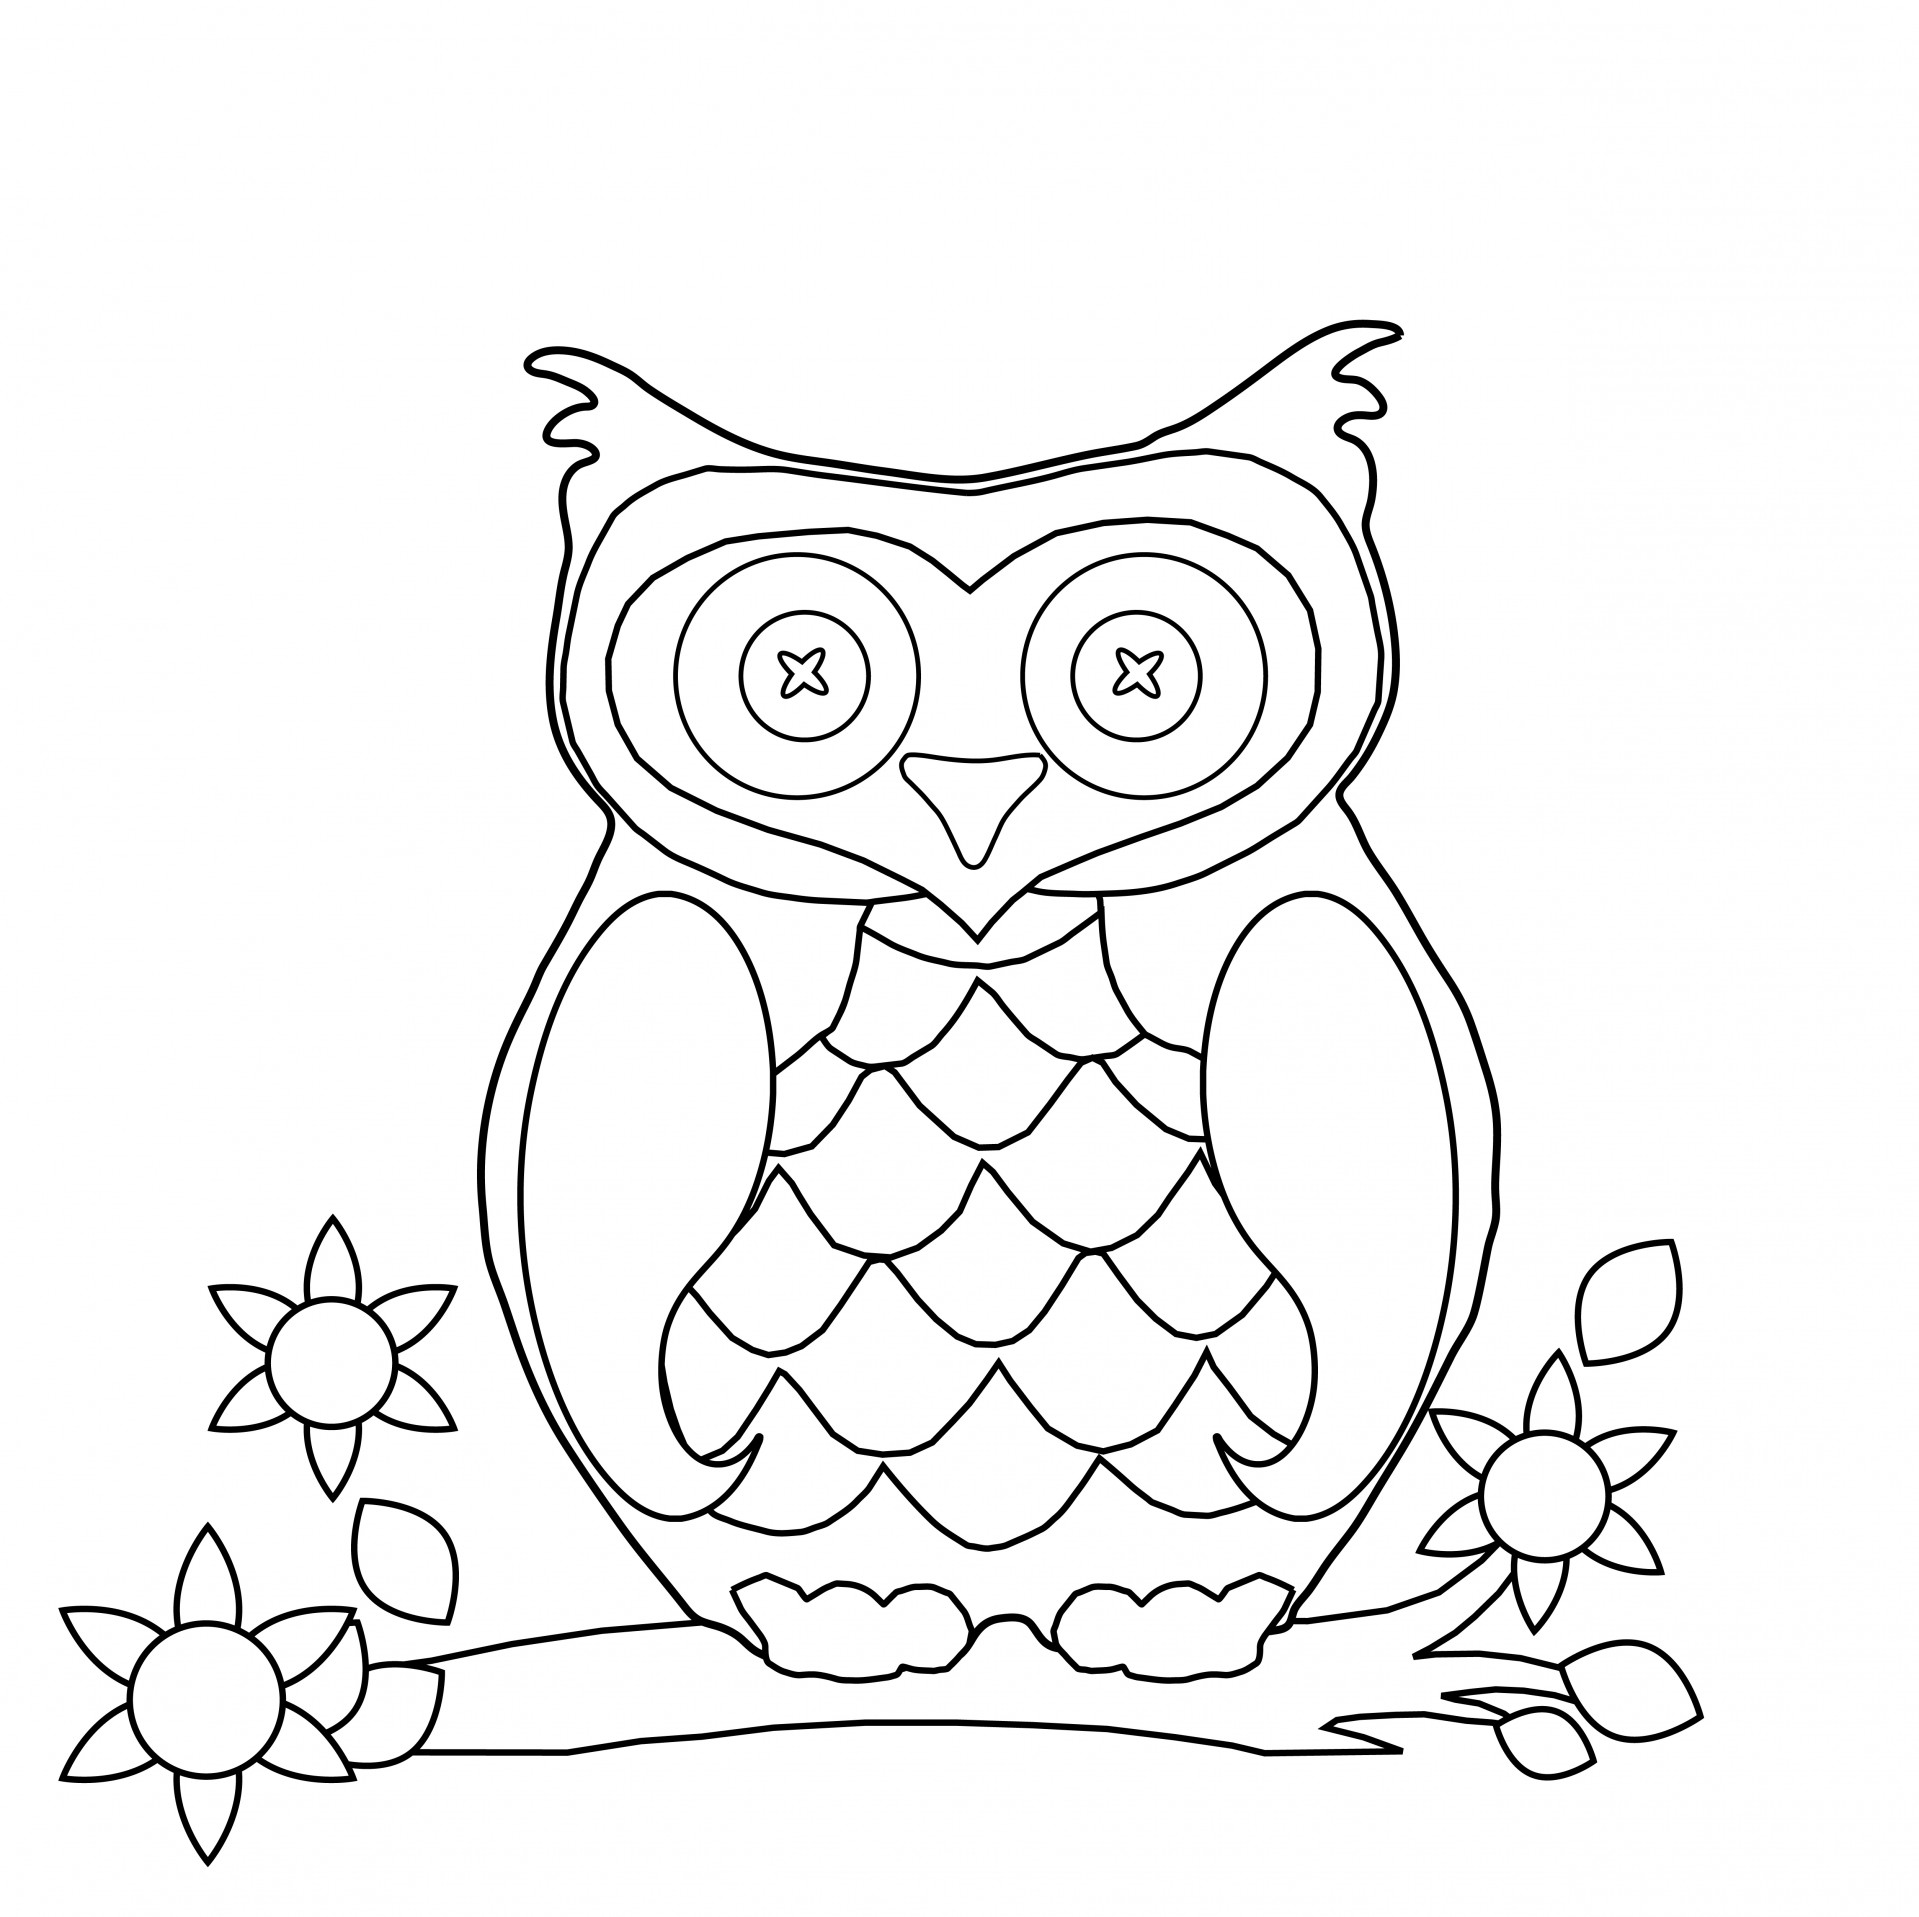 printable pictures to color 40 free printable coloring pages for kids color pictures to printable